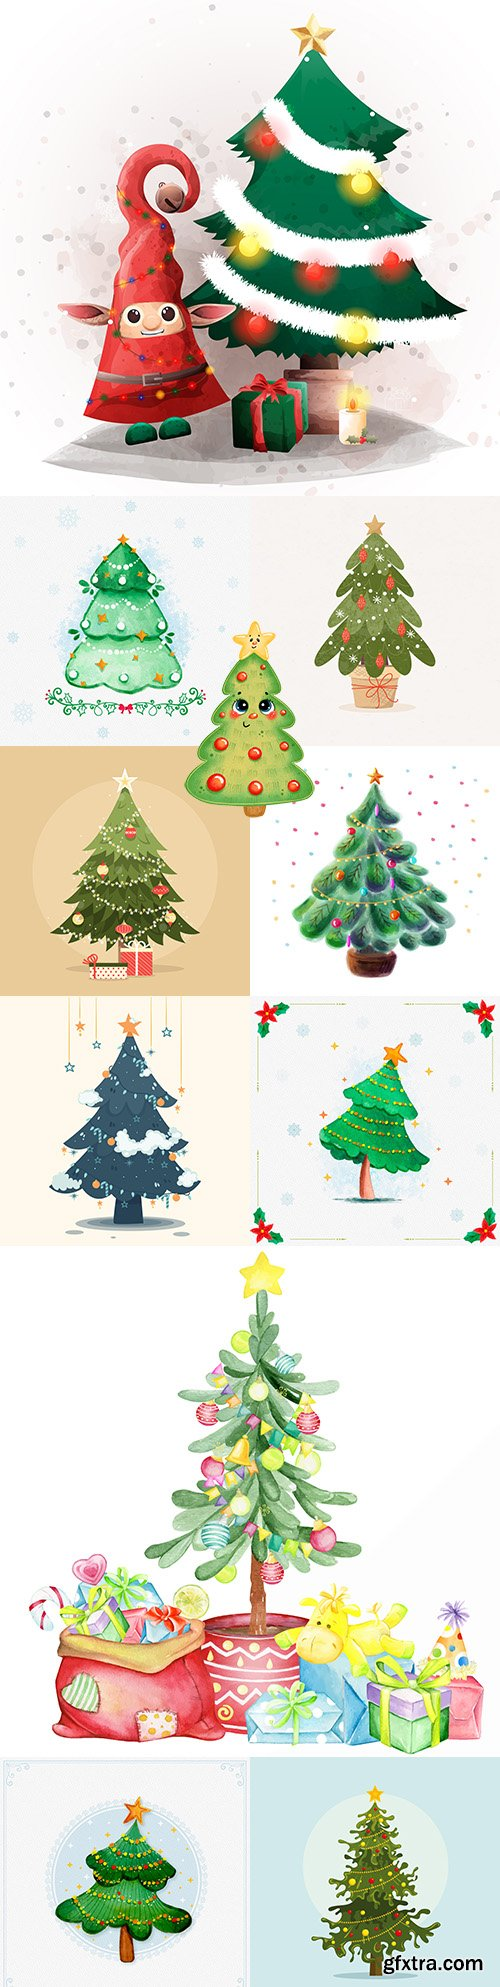 Christmas tree with gifts and toys illustrations